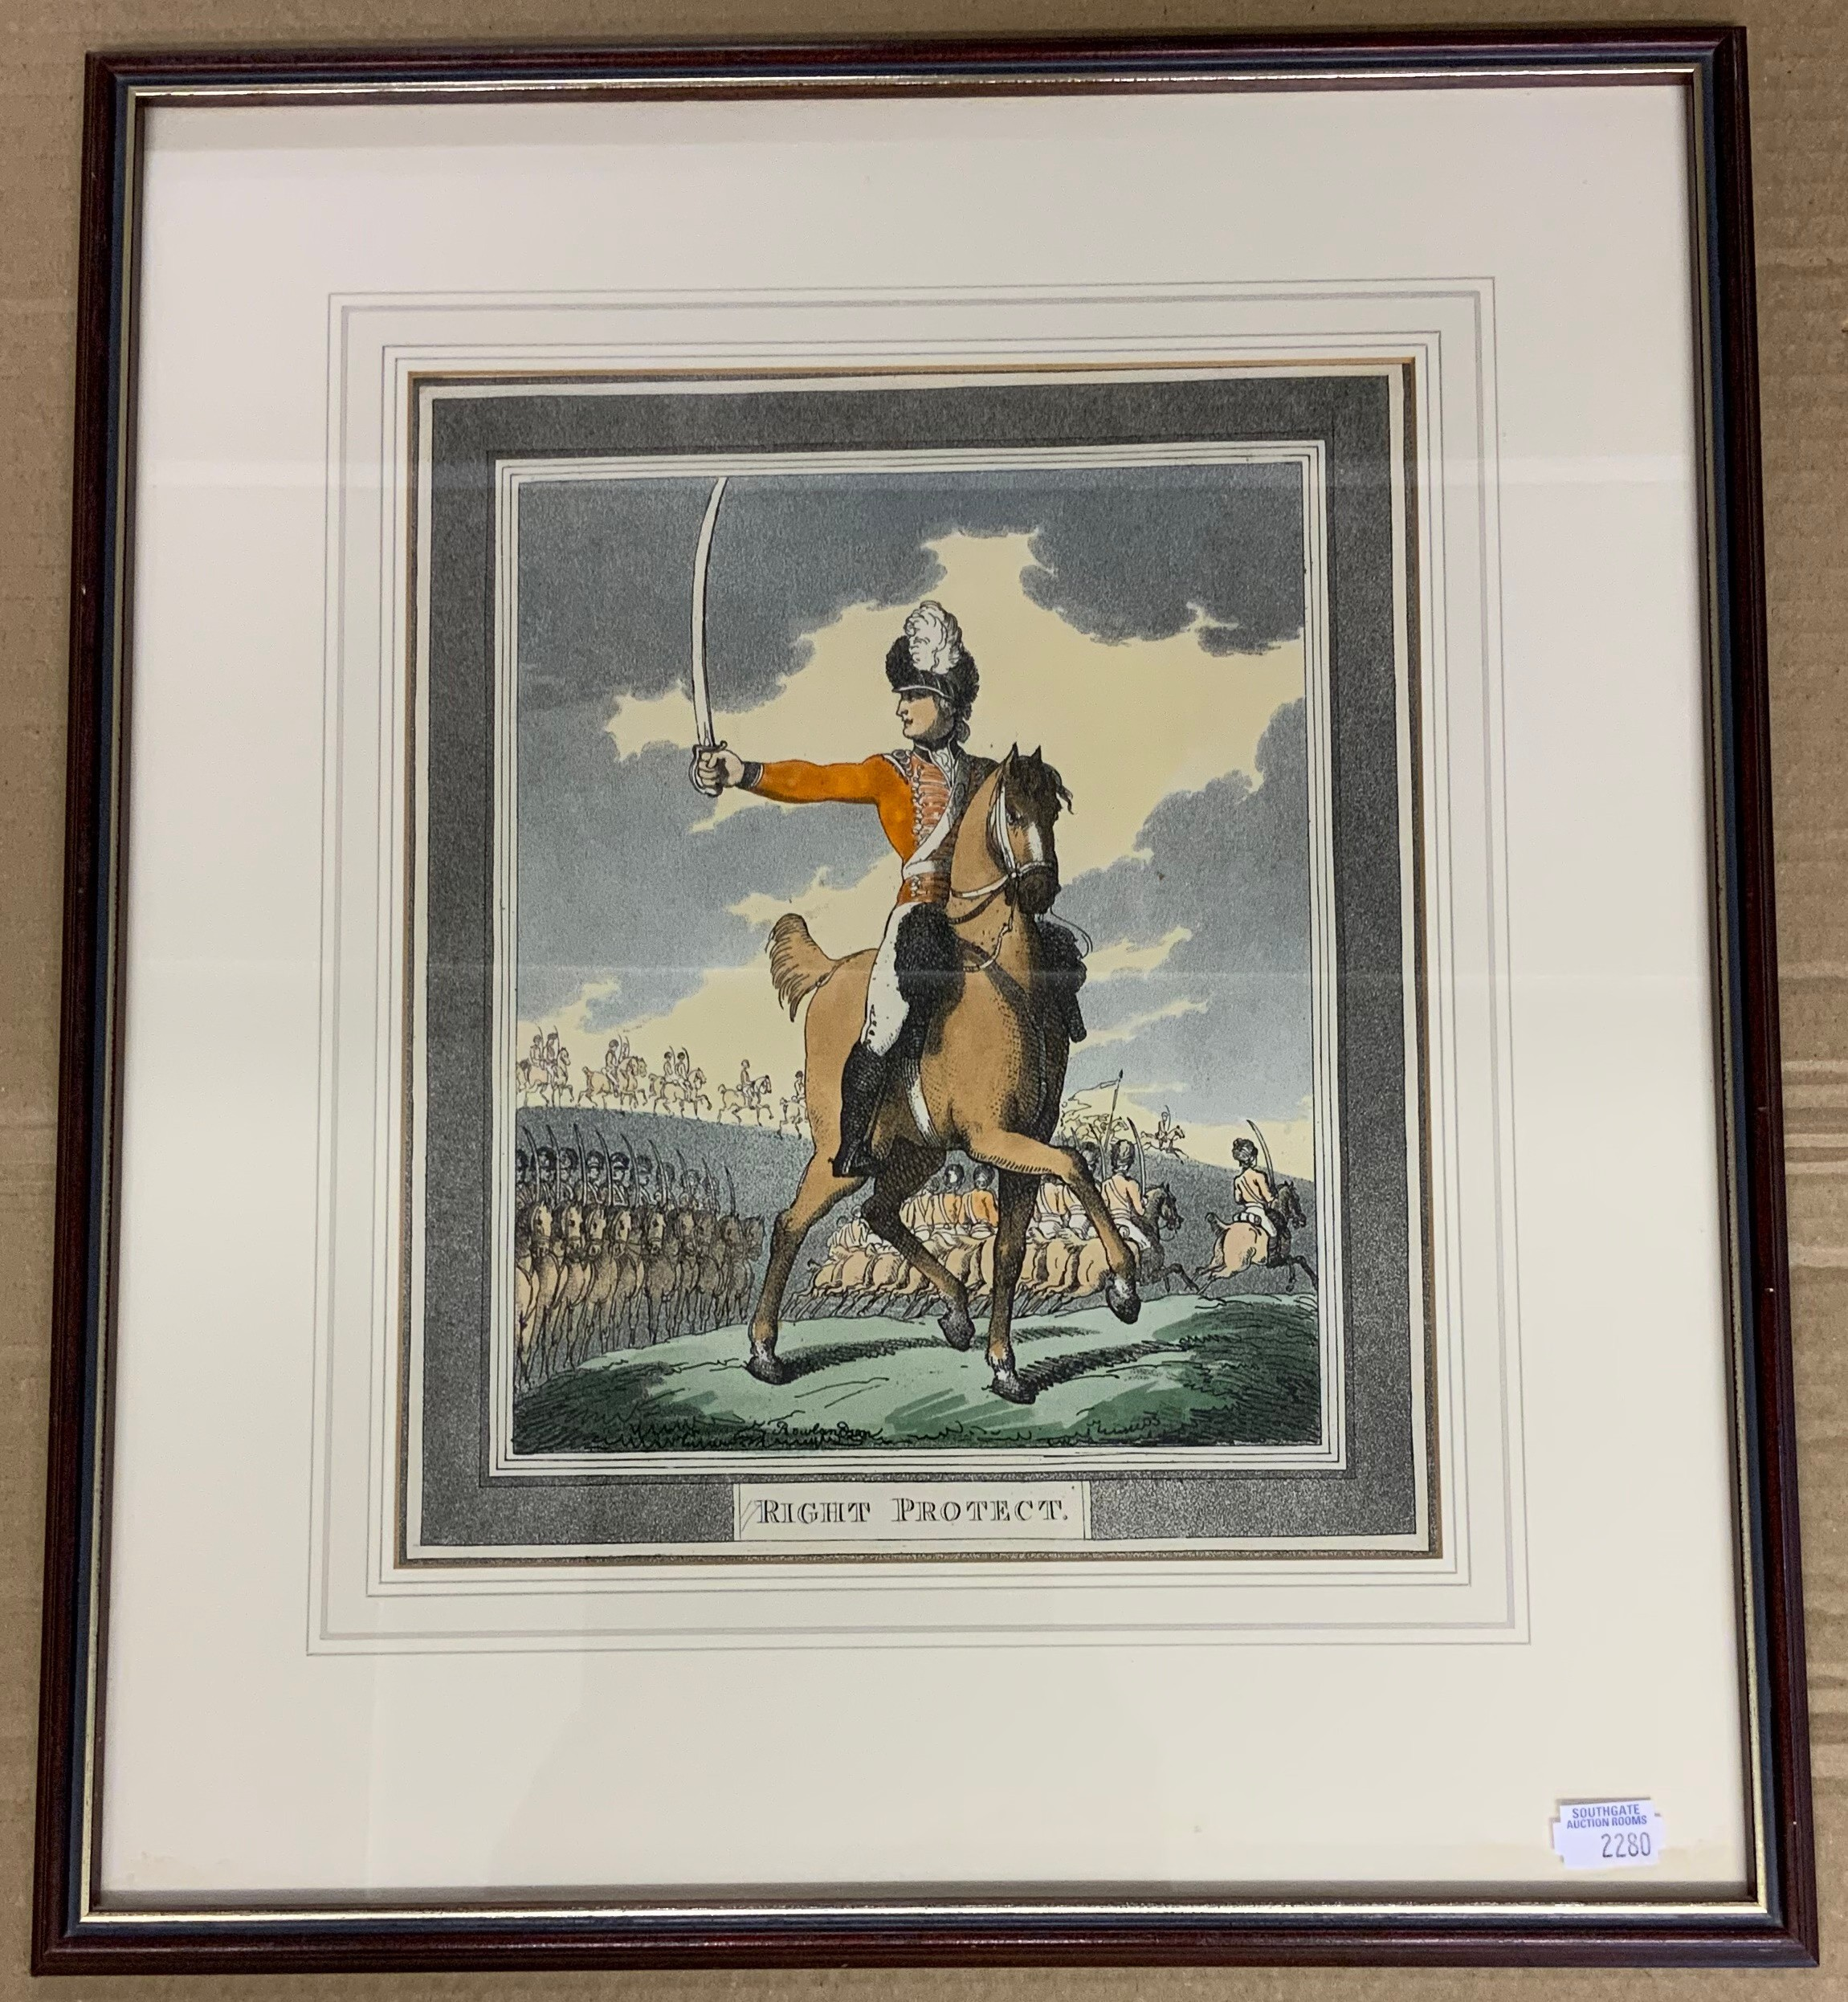 FRAMED RIGHT PROTECT PRINT BY THOMAS ROWLANDSON